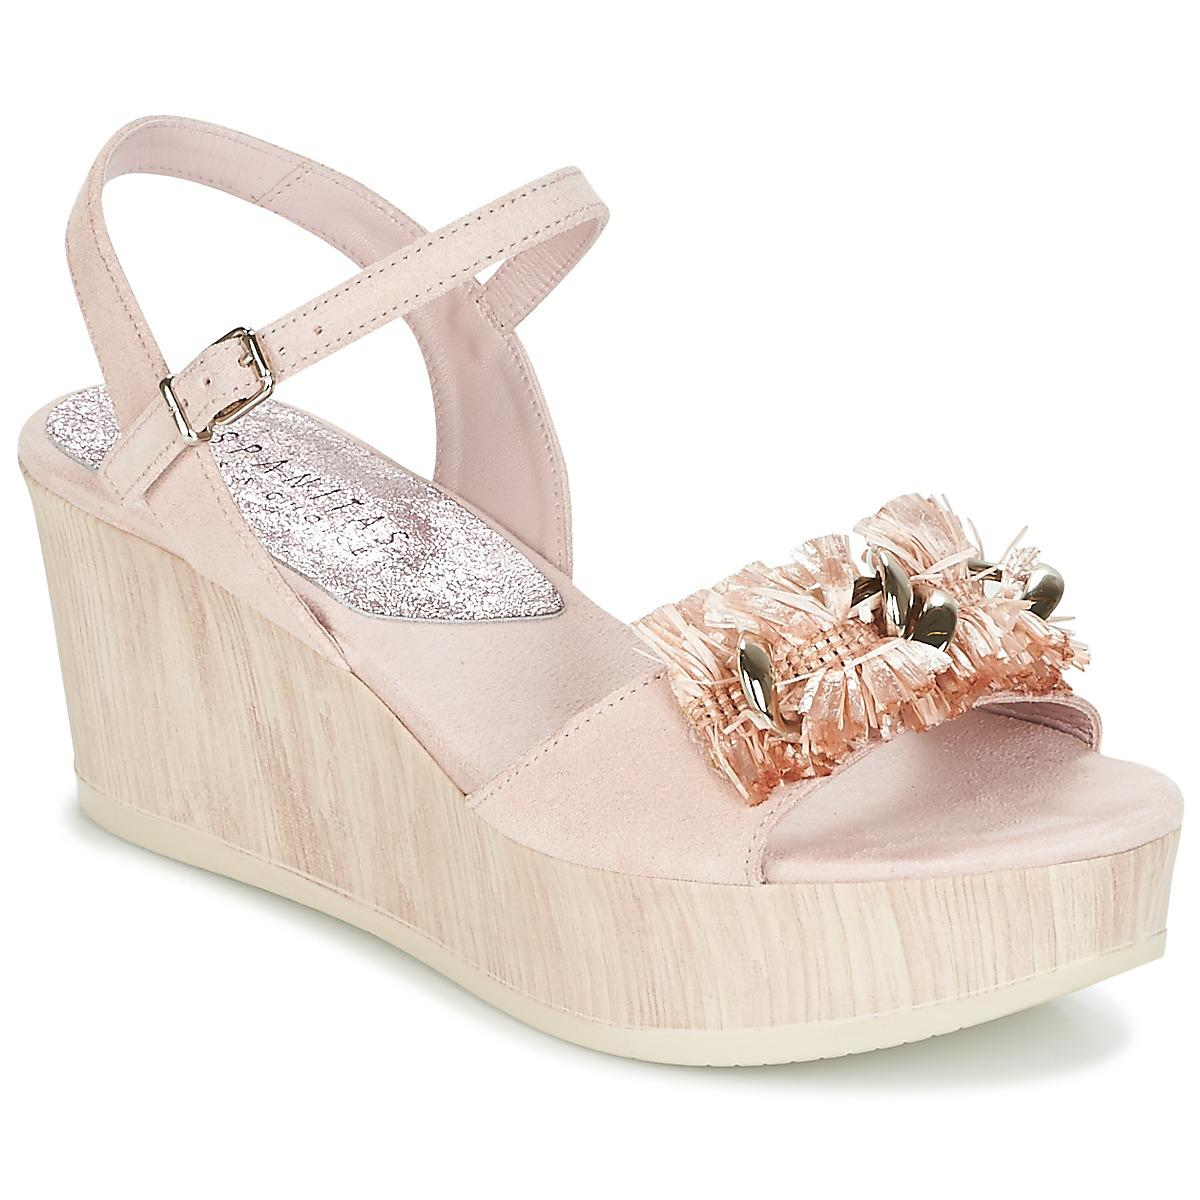 Clearance Limited Edition Hispanitas CORFU women's Sandals in Cheap Sale Professional Cheap Online Store Manchester Newest Sale Online Knock Off piDjW0Y